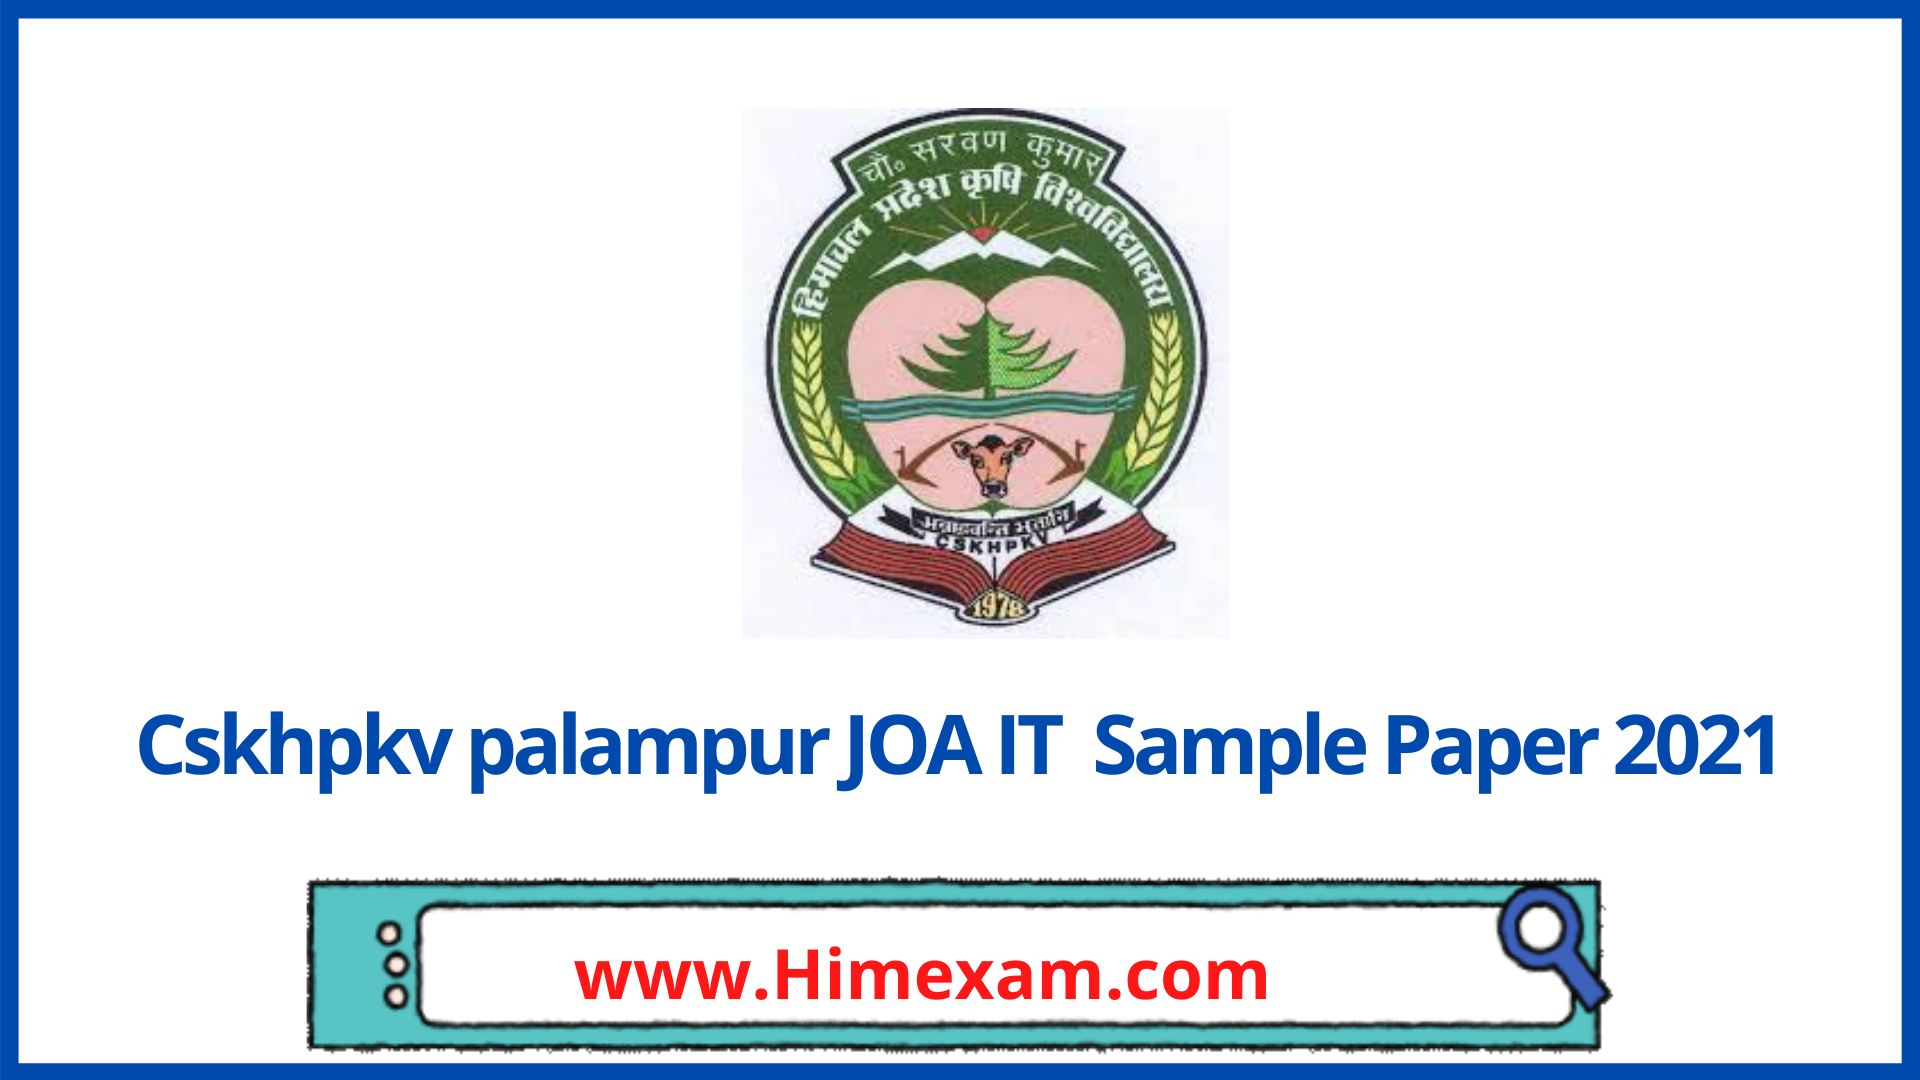 Sample Paper For the Post of JOA(IT)-cskhpkv palampur(Part-1)